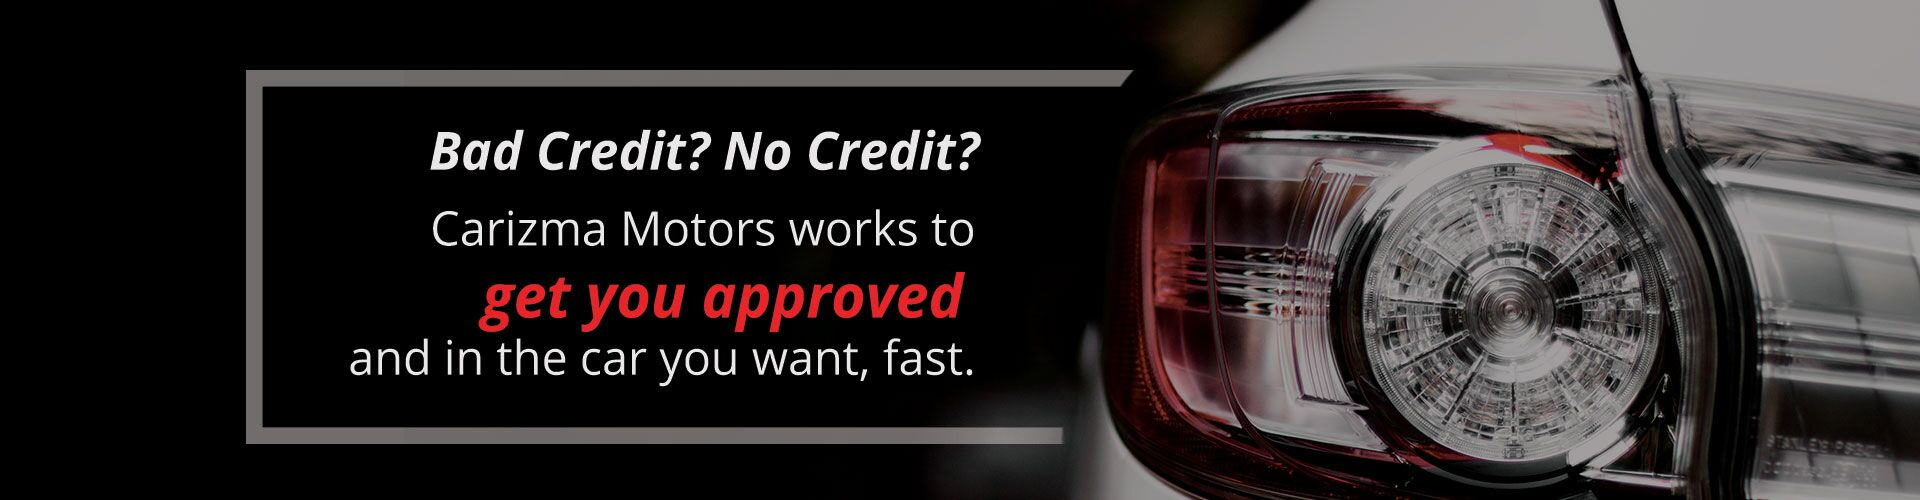 Carizma Motors - Get Approved